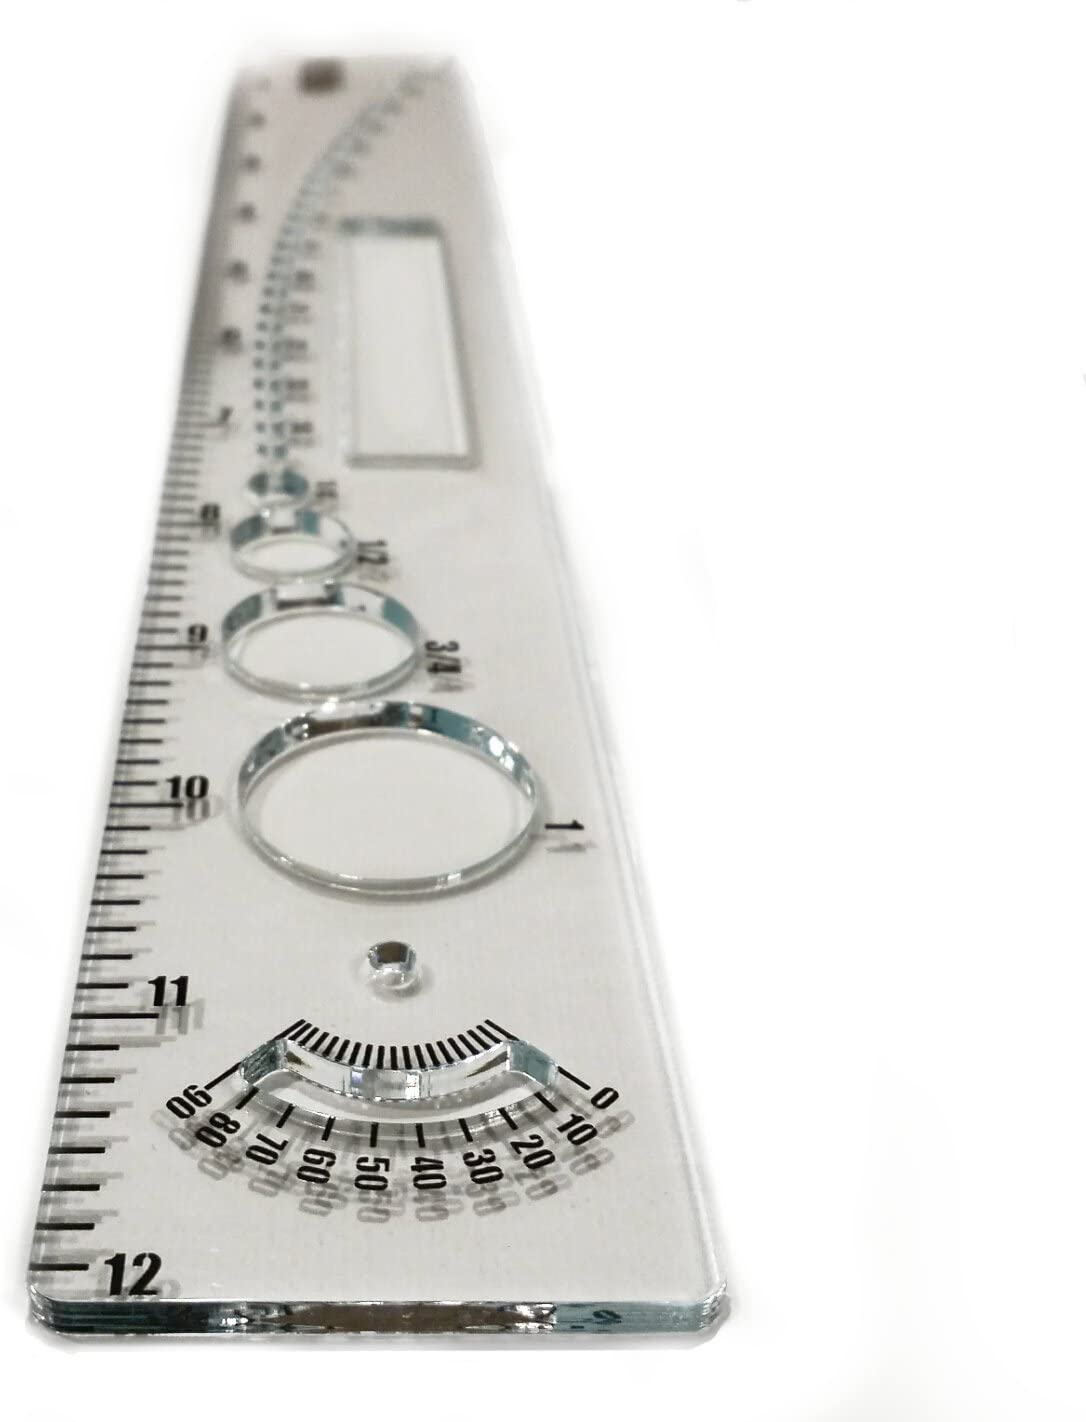 DrawClear Multifunction Ruler, 12 inch, Compass, Protractor, Circle & Square Stencil